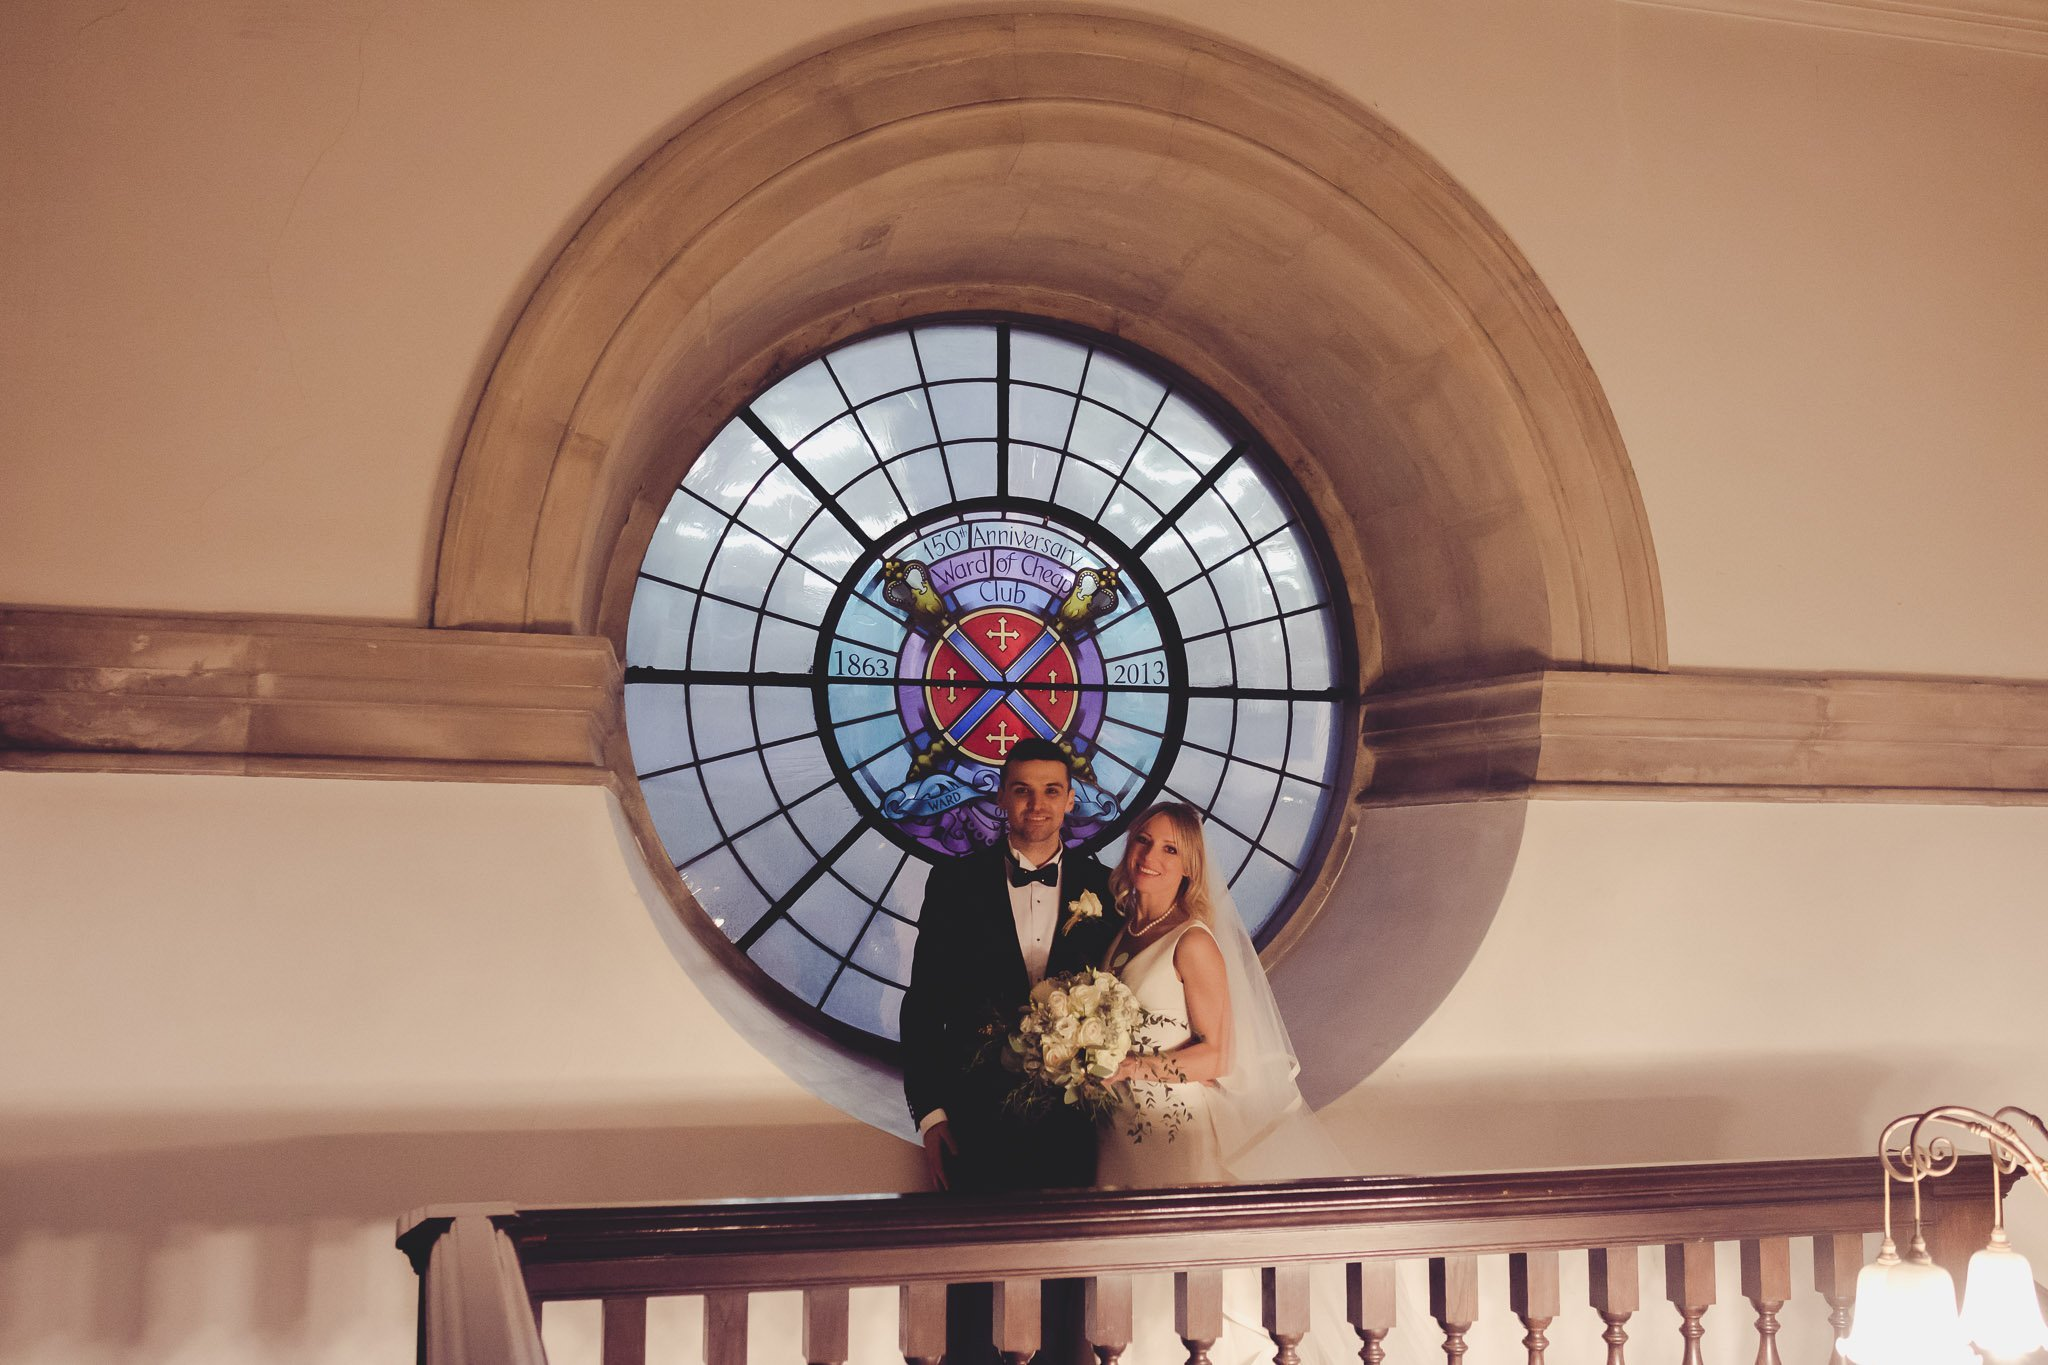 Bride & Groom portrait by a Stained Glass Window St Lawrence Jewry wedding